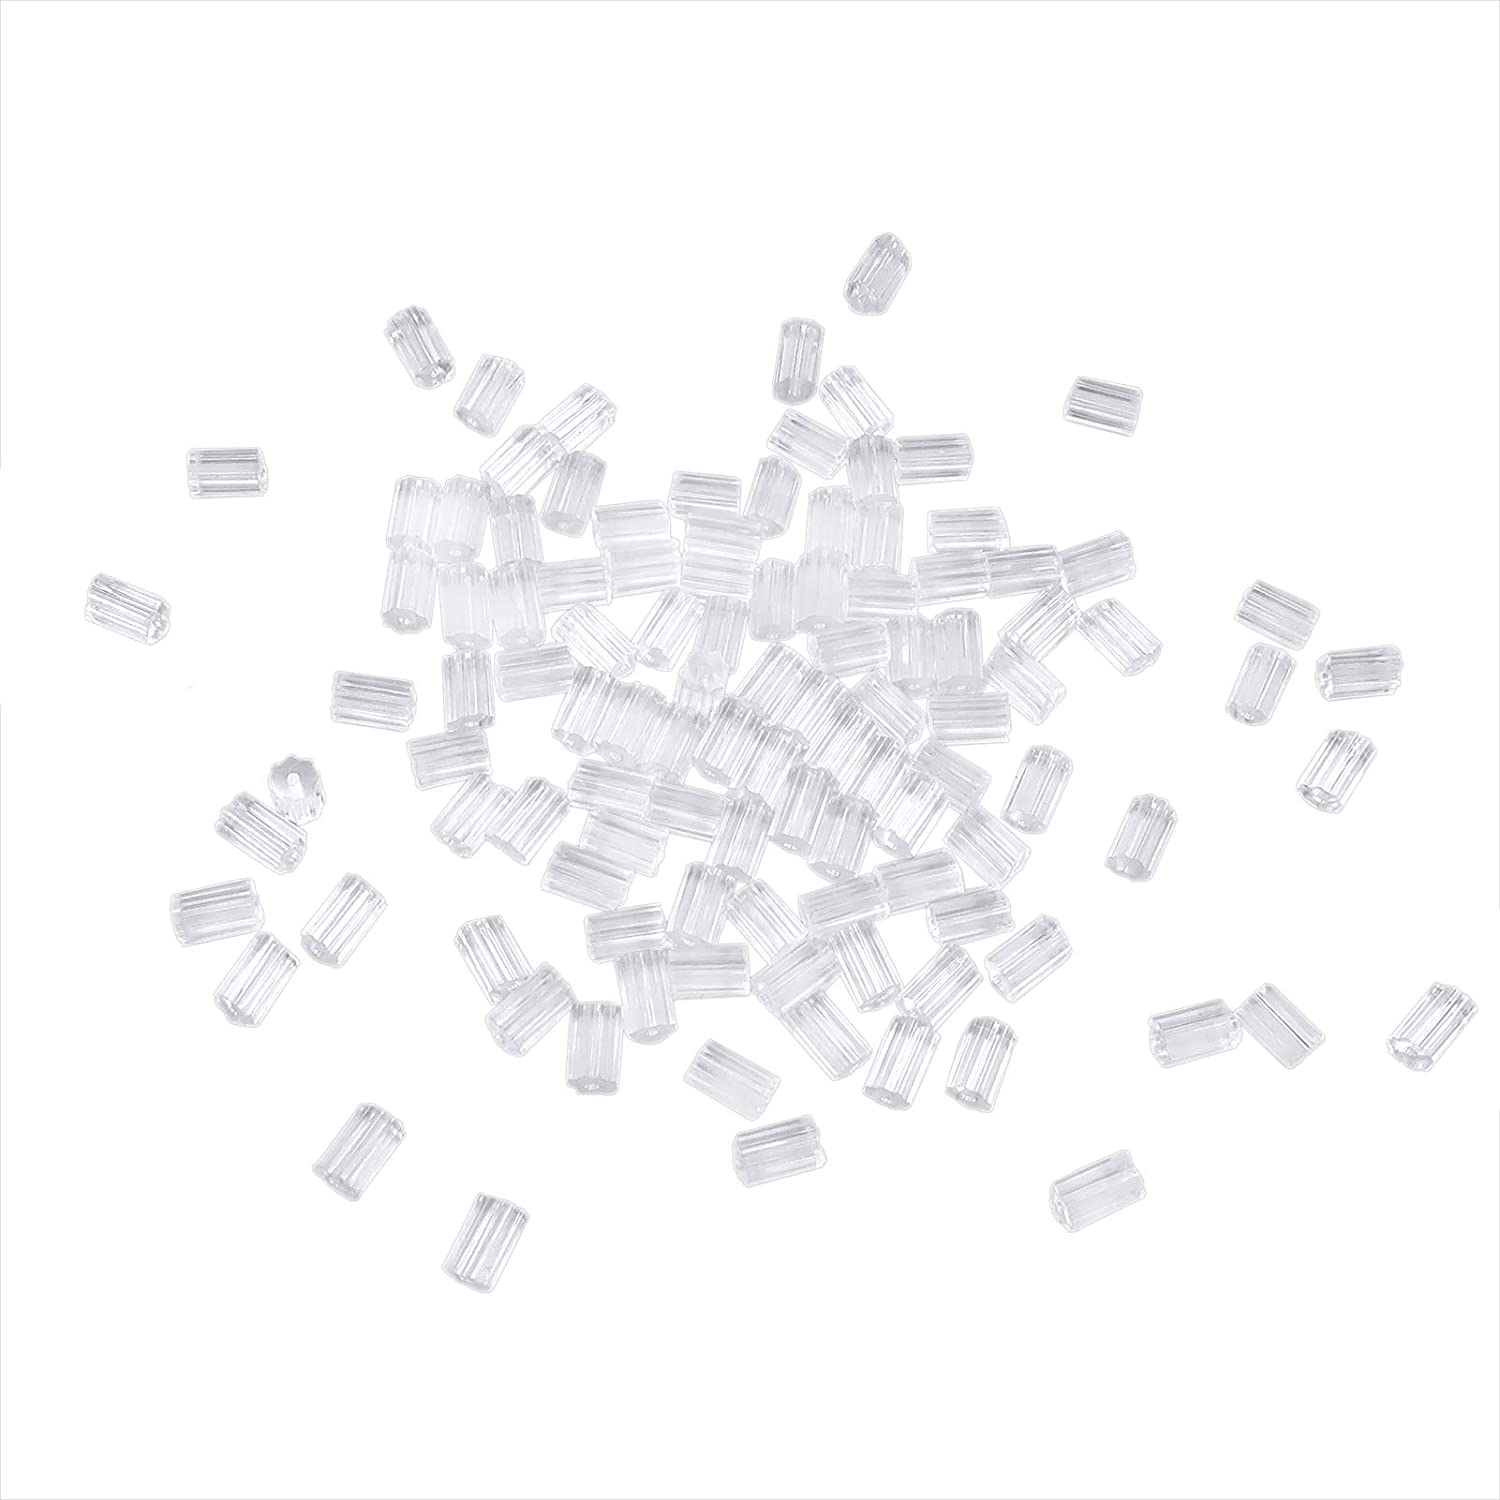 TOAOB 100pcs Clear Rubber Earring for Wholesale Stopper 3x3mm Backs Safety Finally popular brand